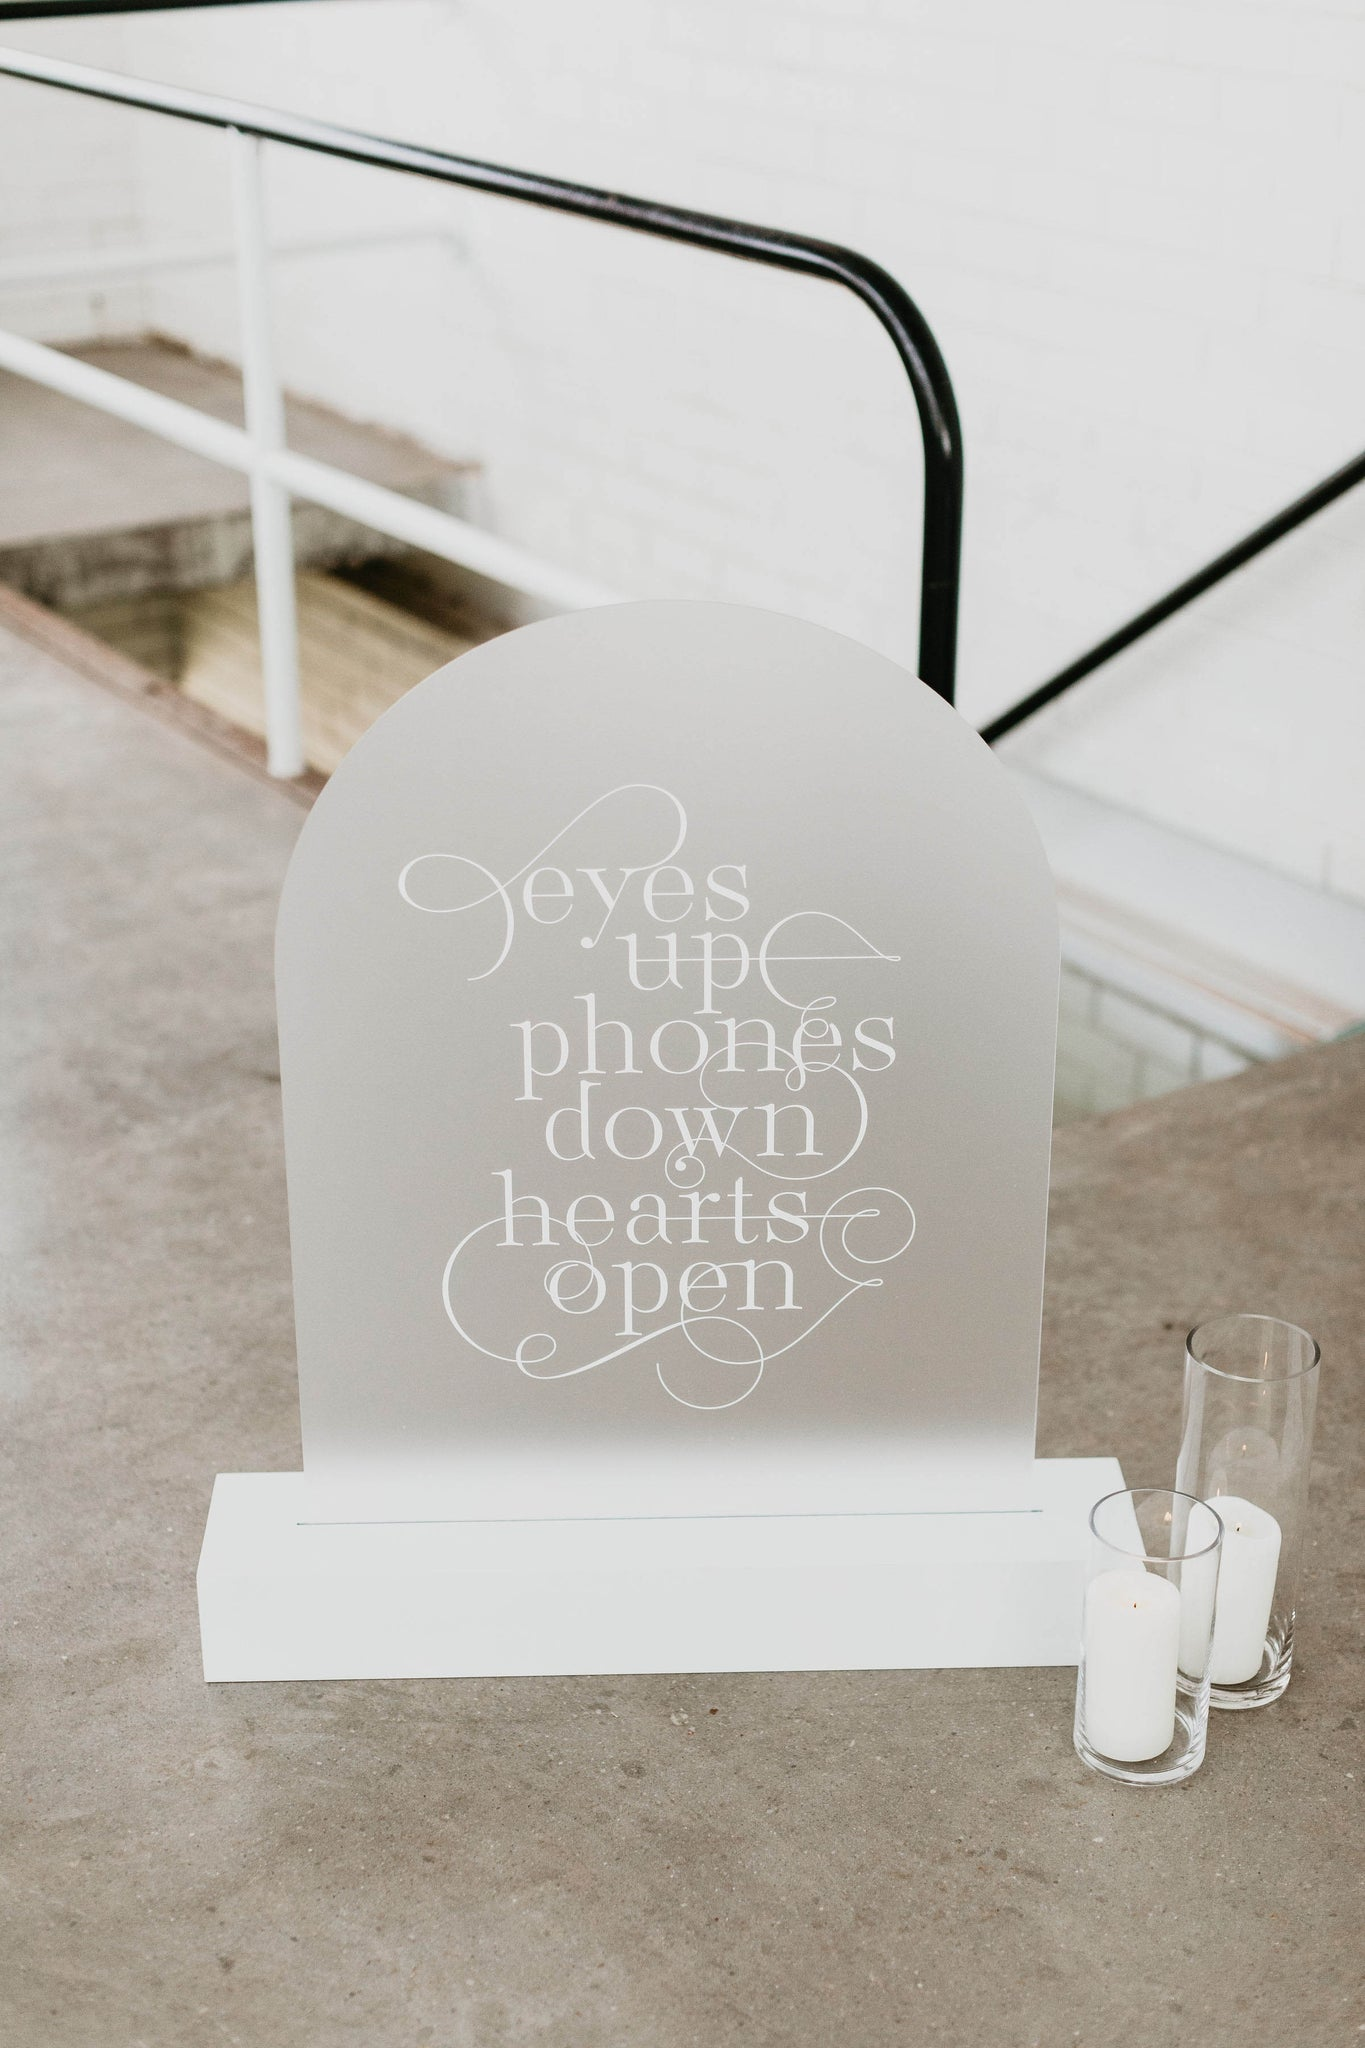 eyes up phones down hearts open acrylic sign hire wedding sign melbourne hire